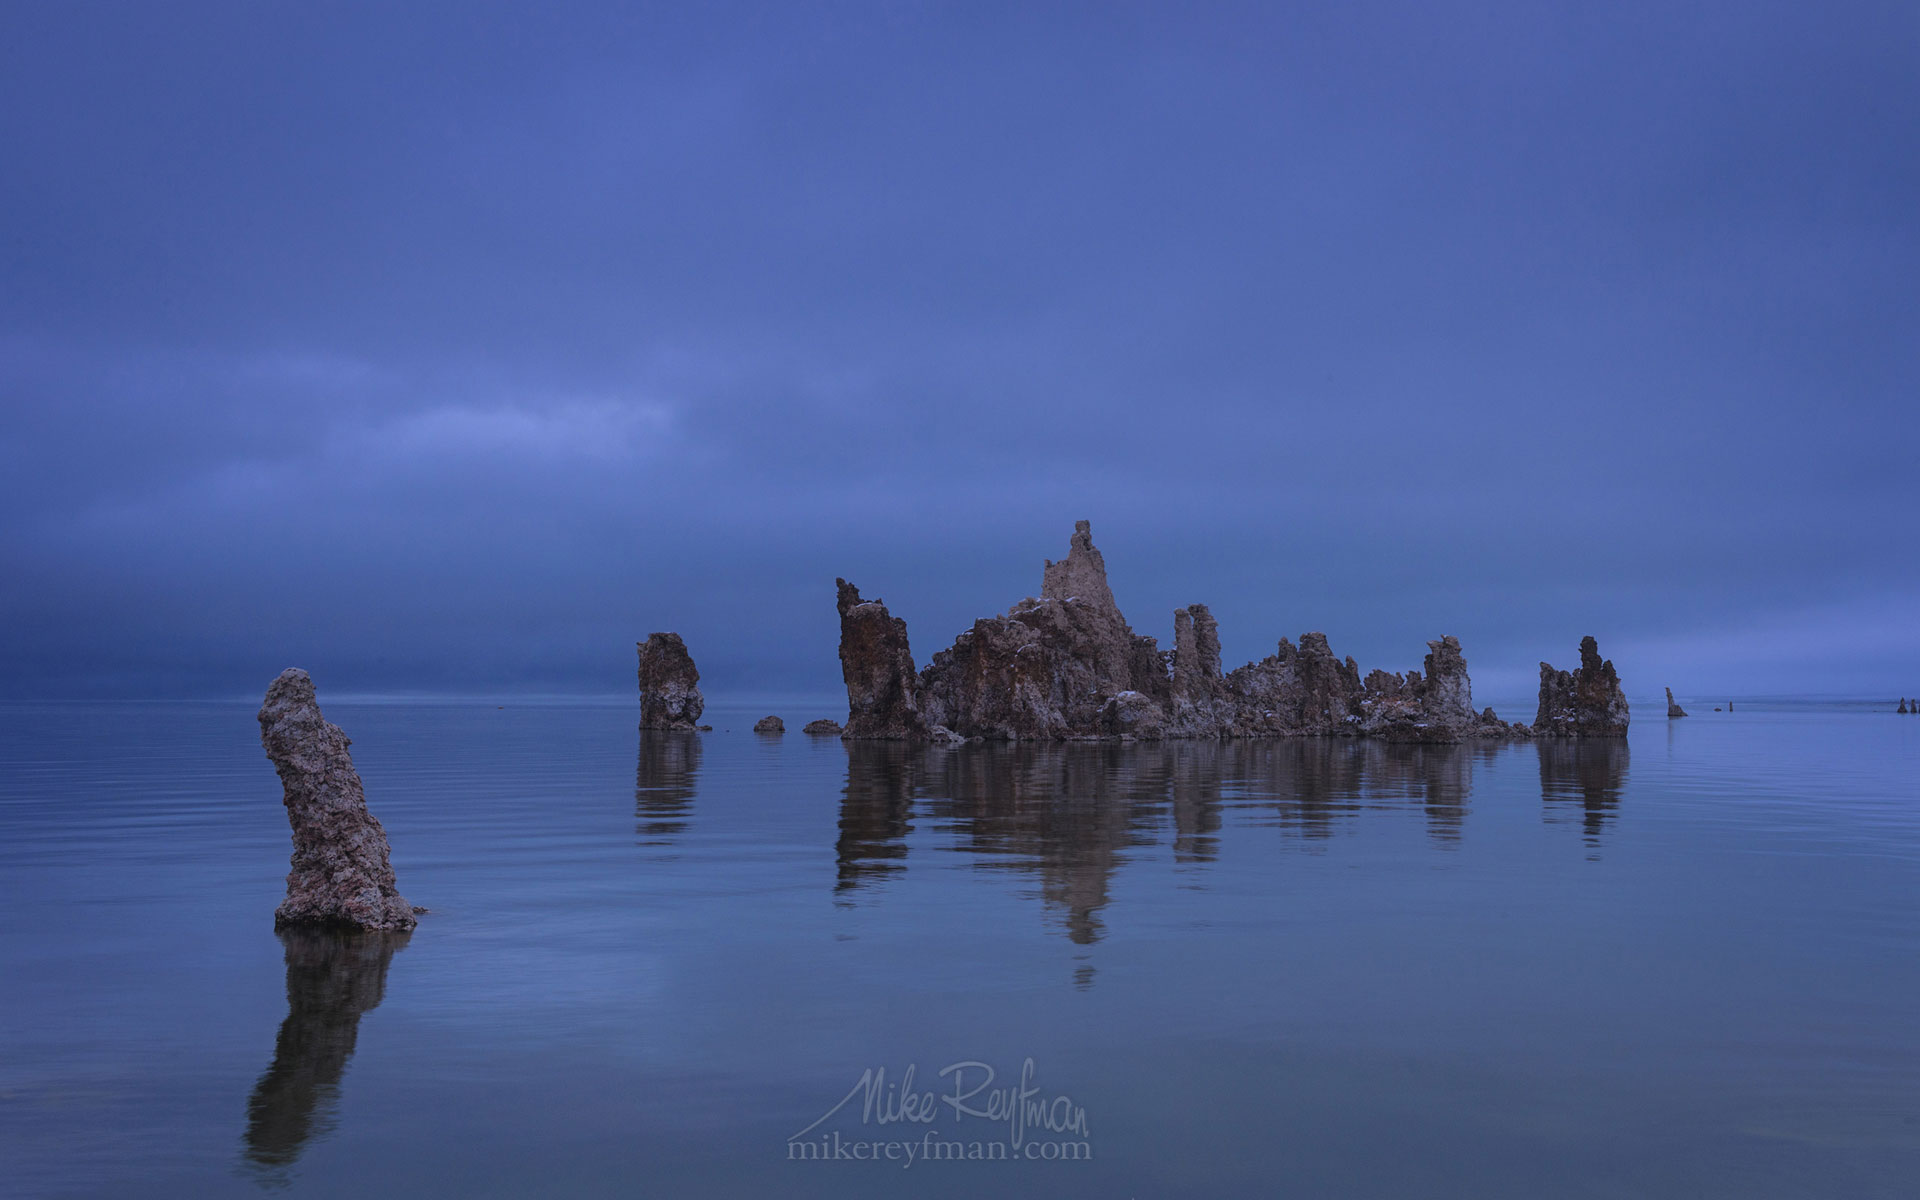 Mono Lake, Tufa State Natural Reserve, Eastern Sierra, California, USA ML1-MRN3X0741 - Mono Lake Tufa State Natural Reserve, Eastern Sierra, California - Mike Reyfman Photography